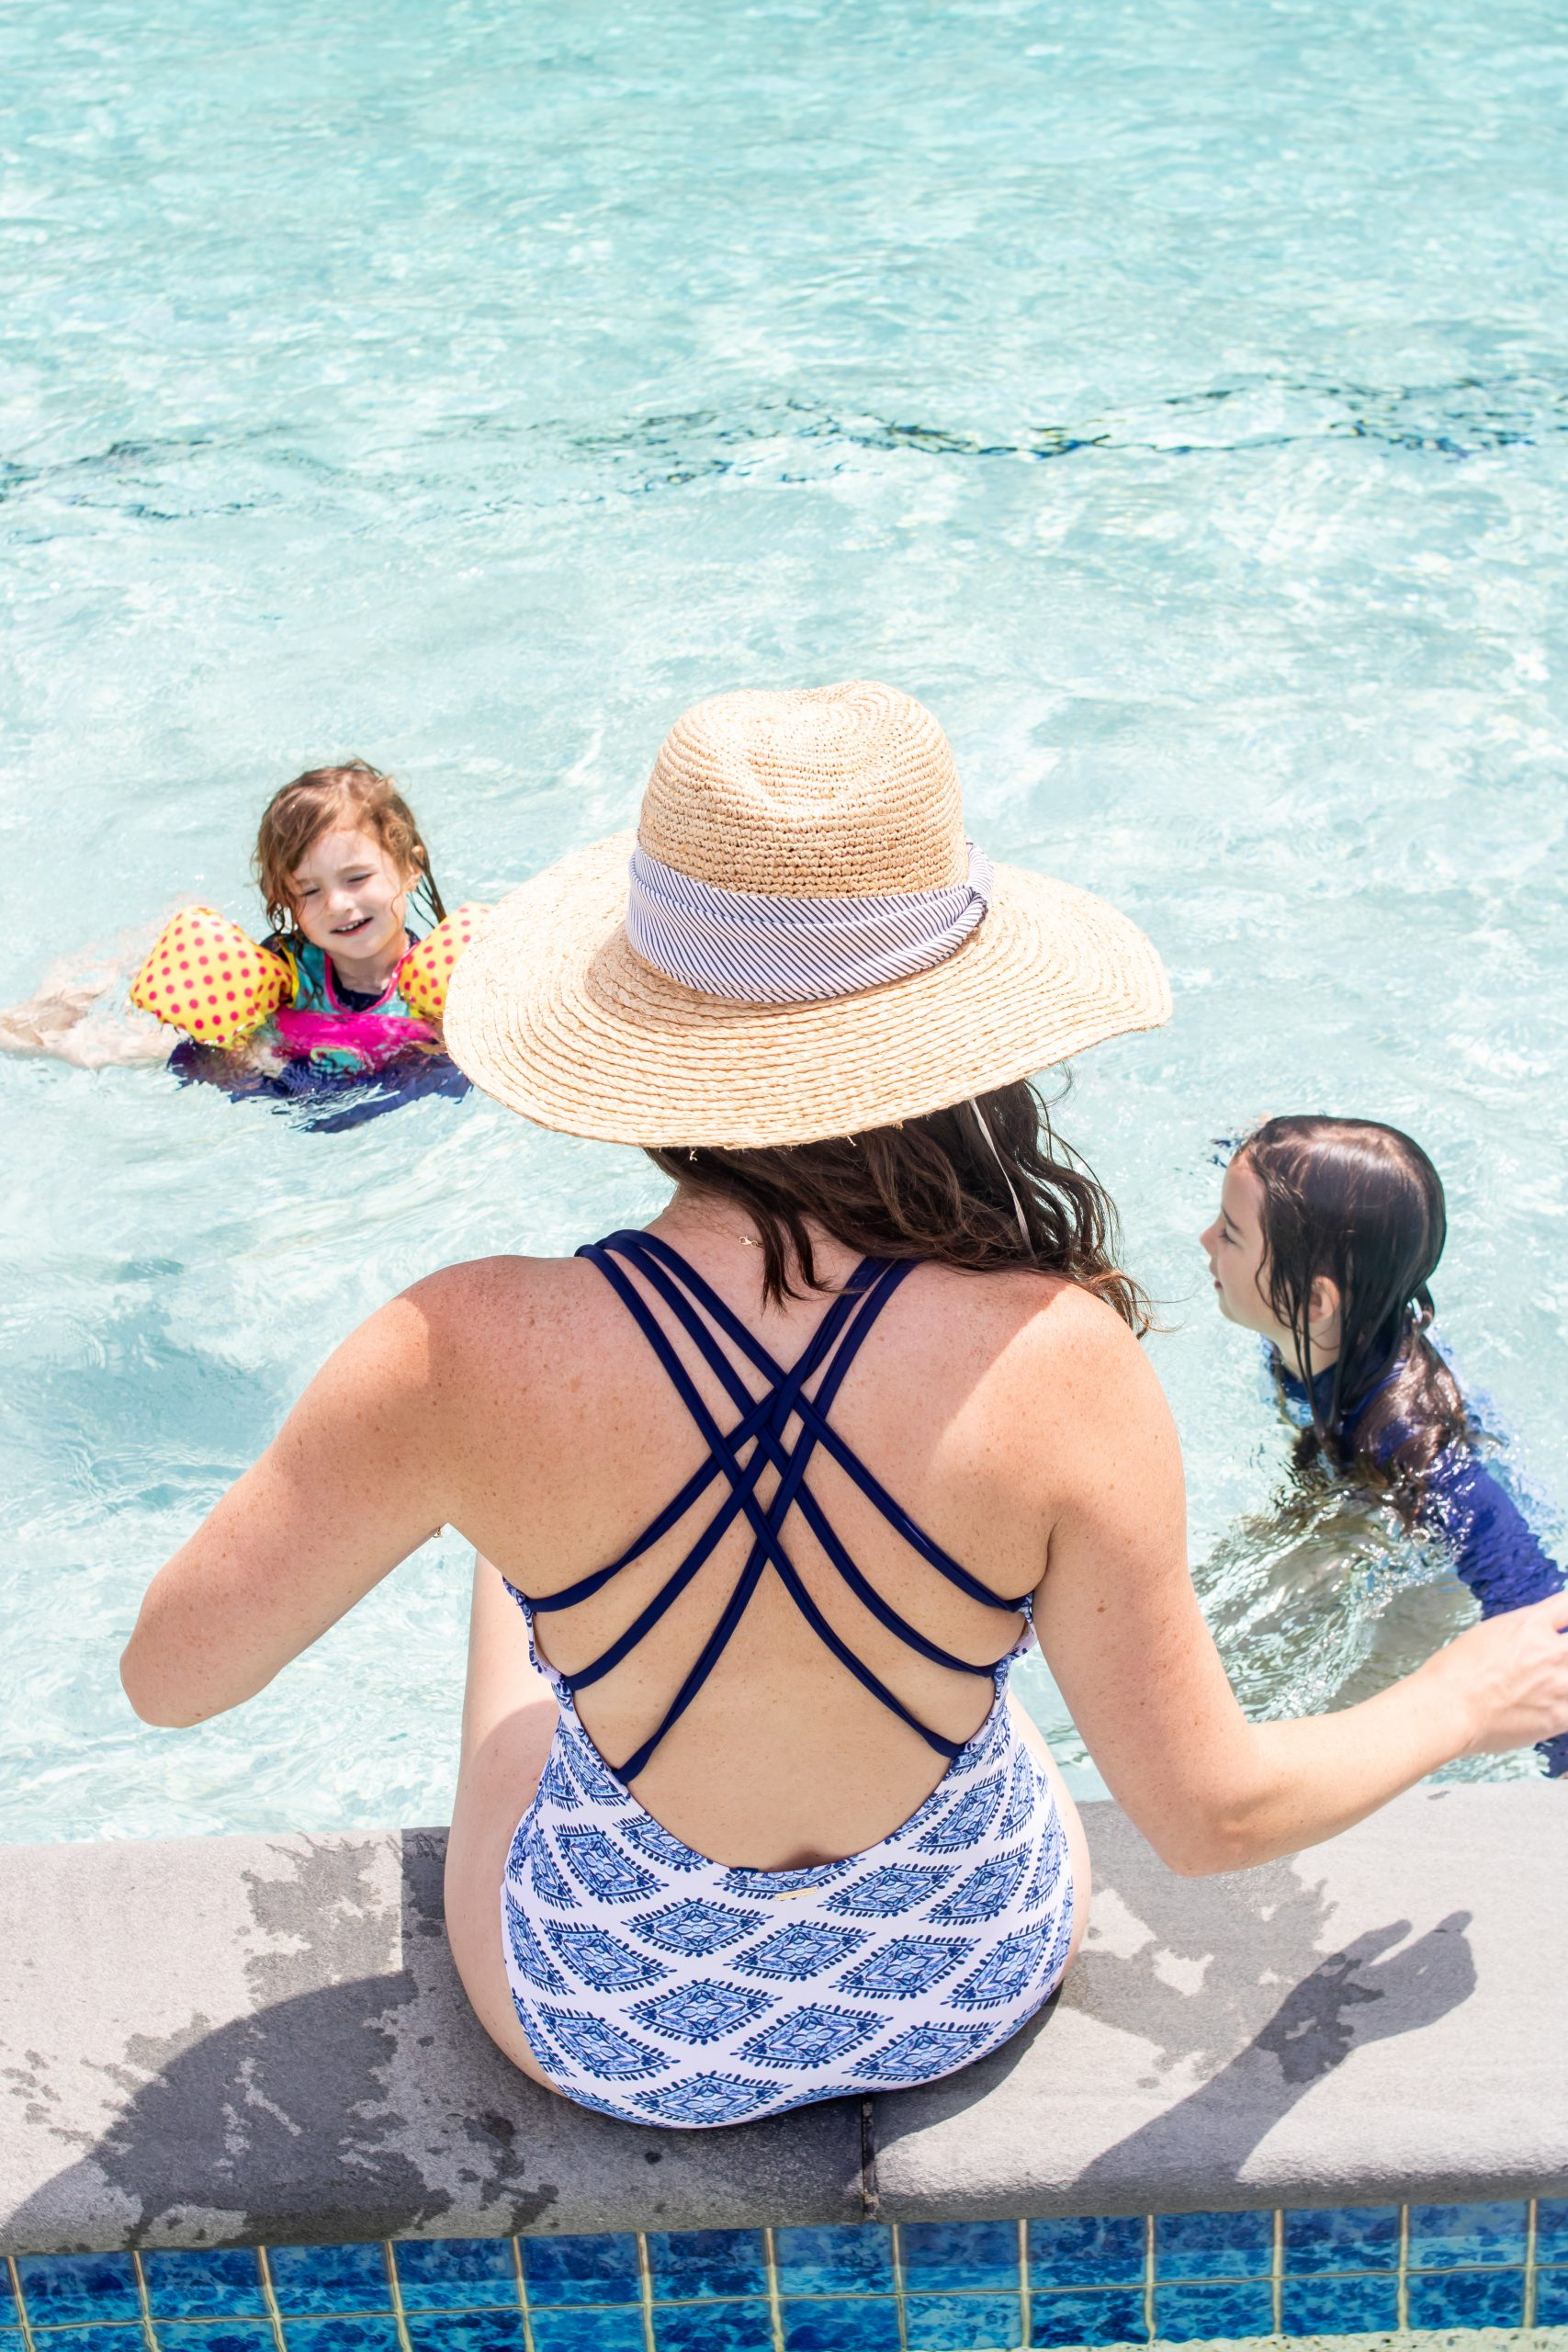 woman in bathing suit and beach hat sitting poolside watching children play at The Nantucket